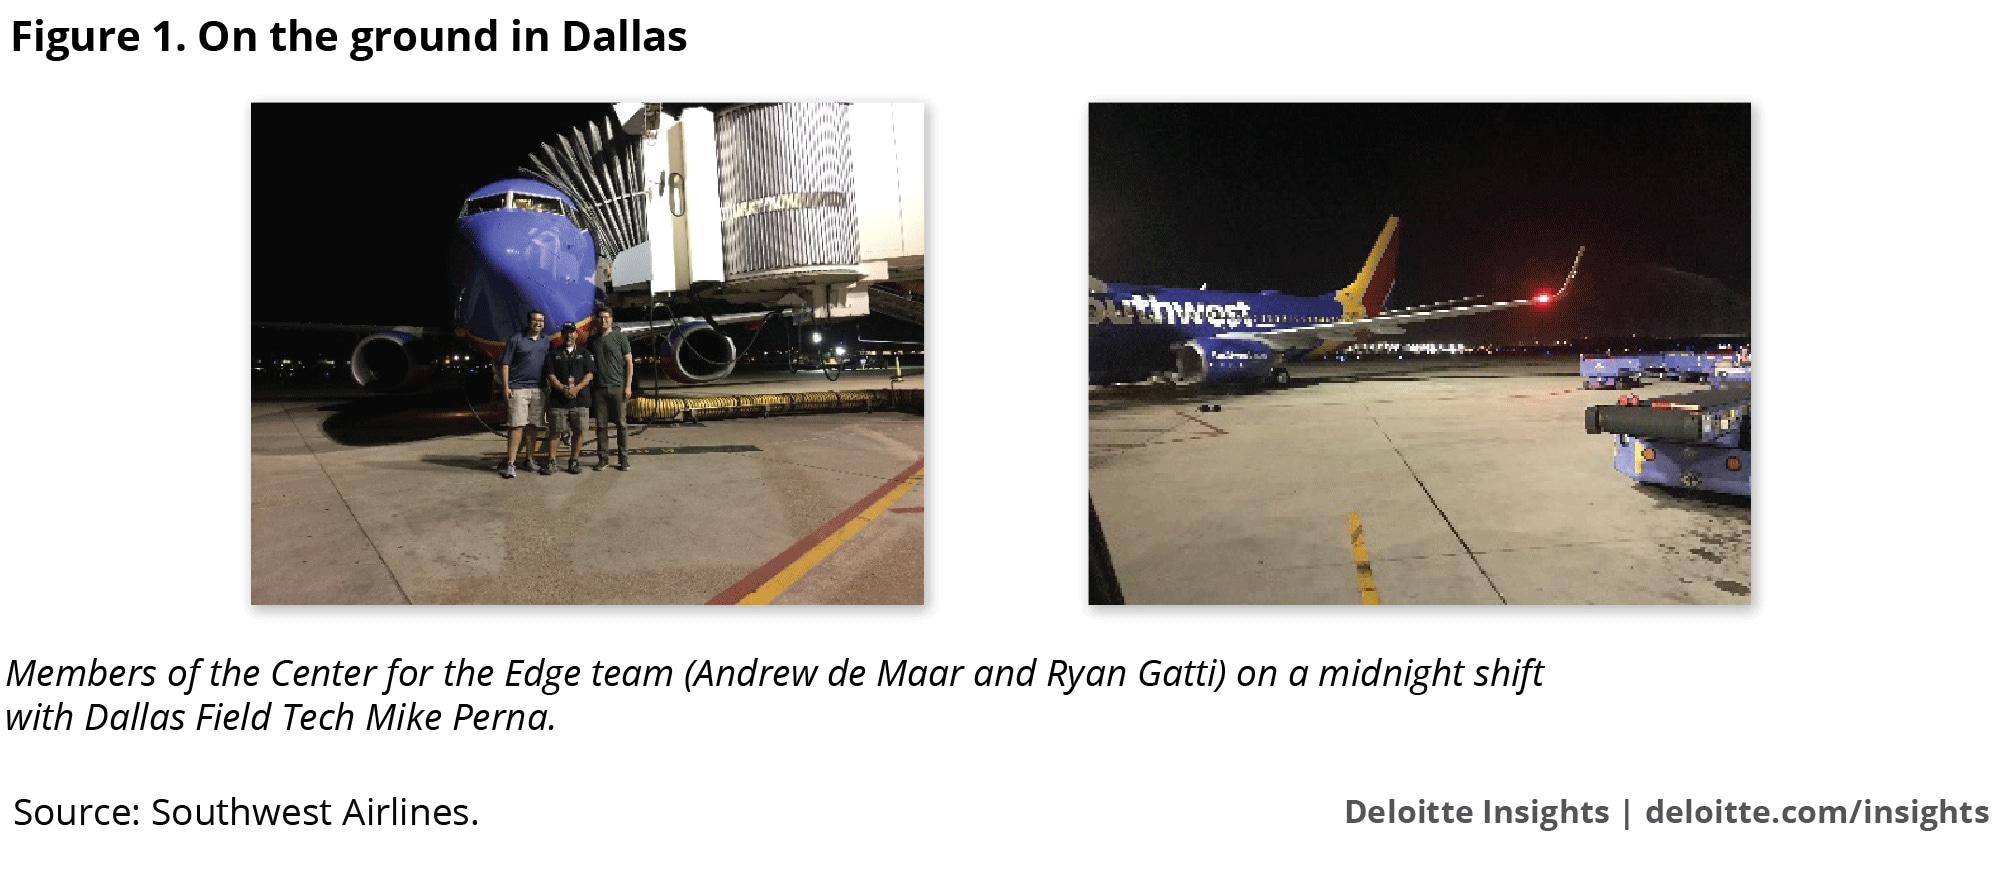 On the ground in Dallas